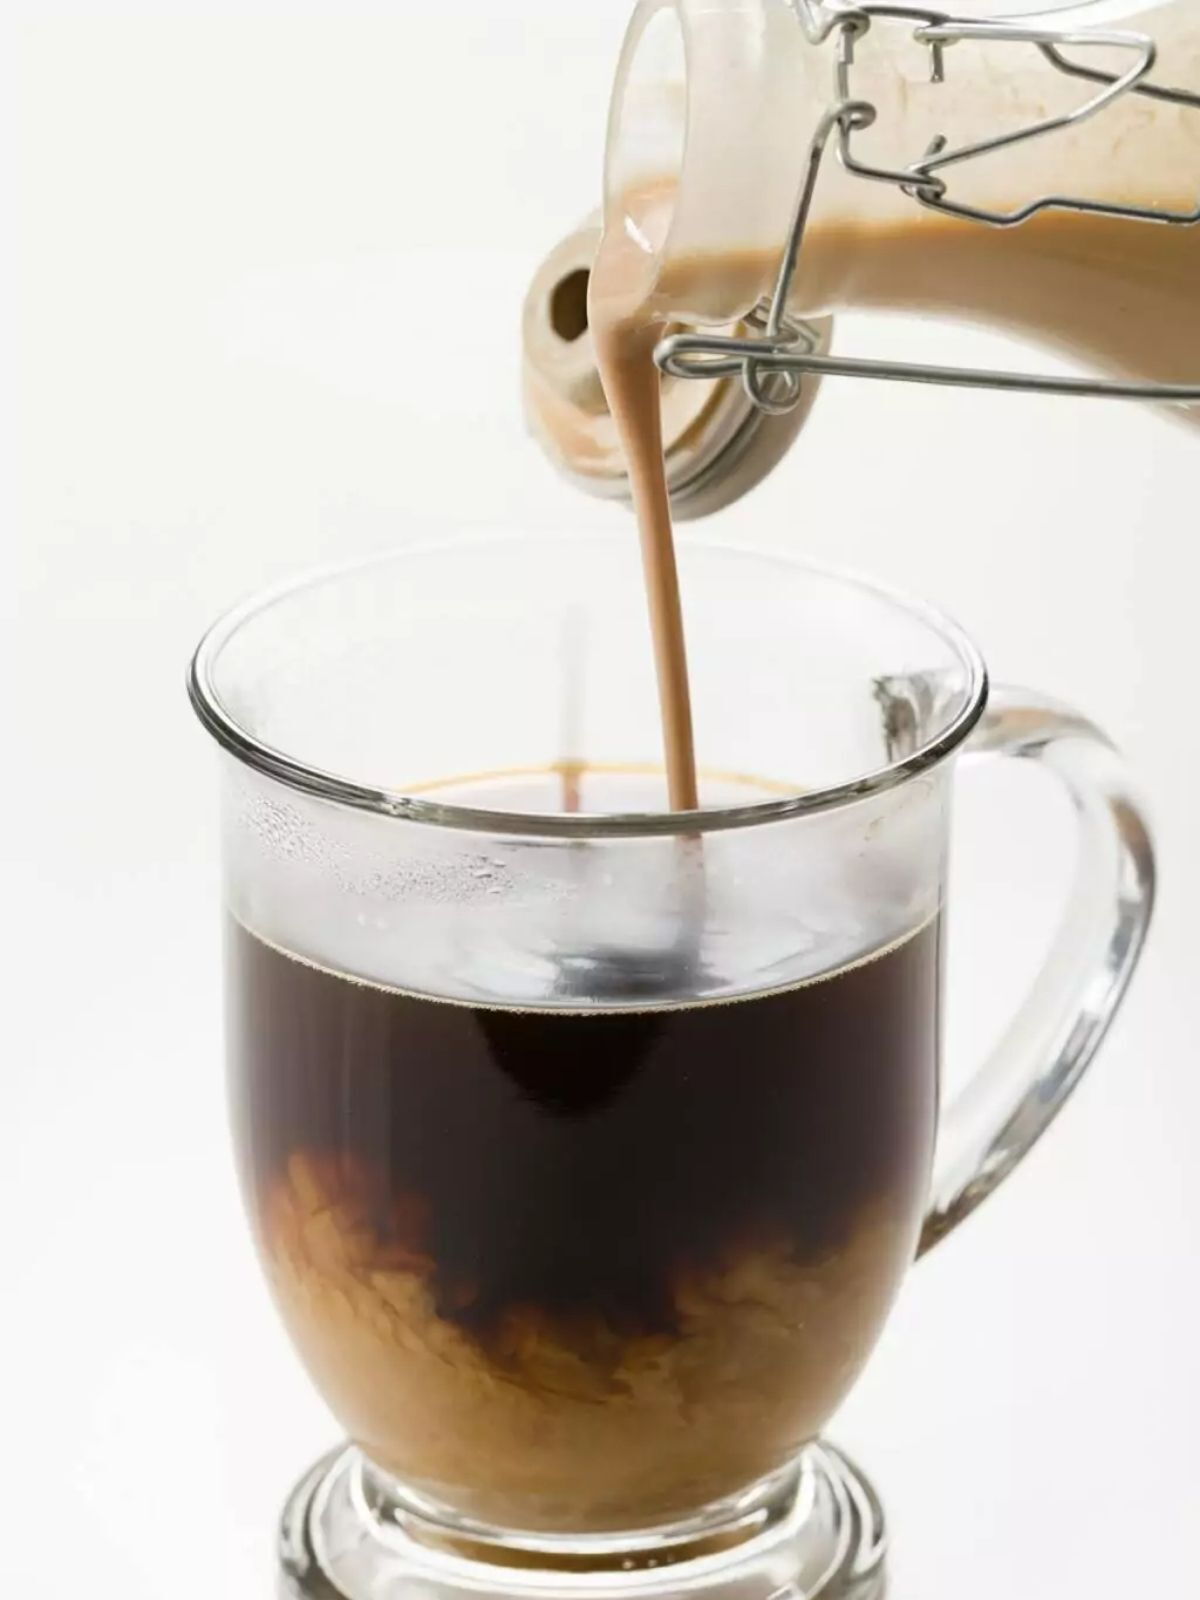 Homemade bailey's irish cream poured into a cup of coffee.